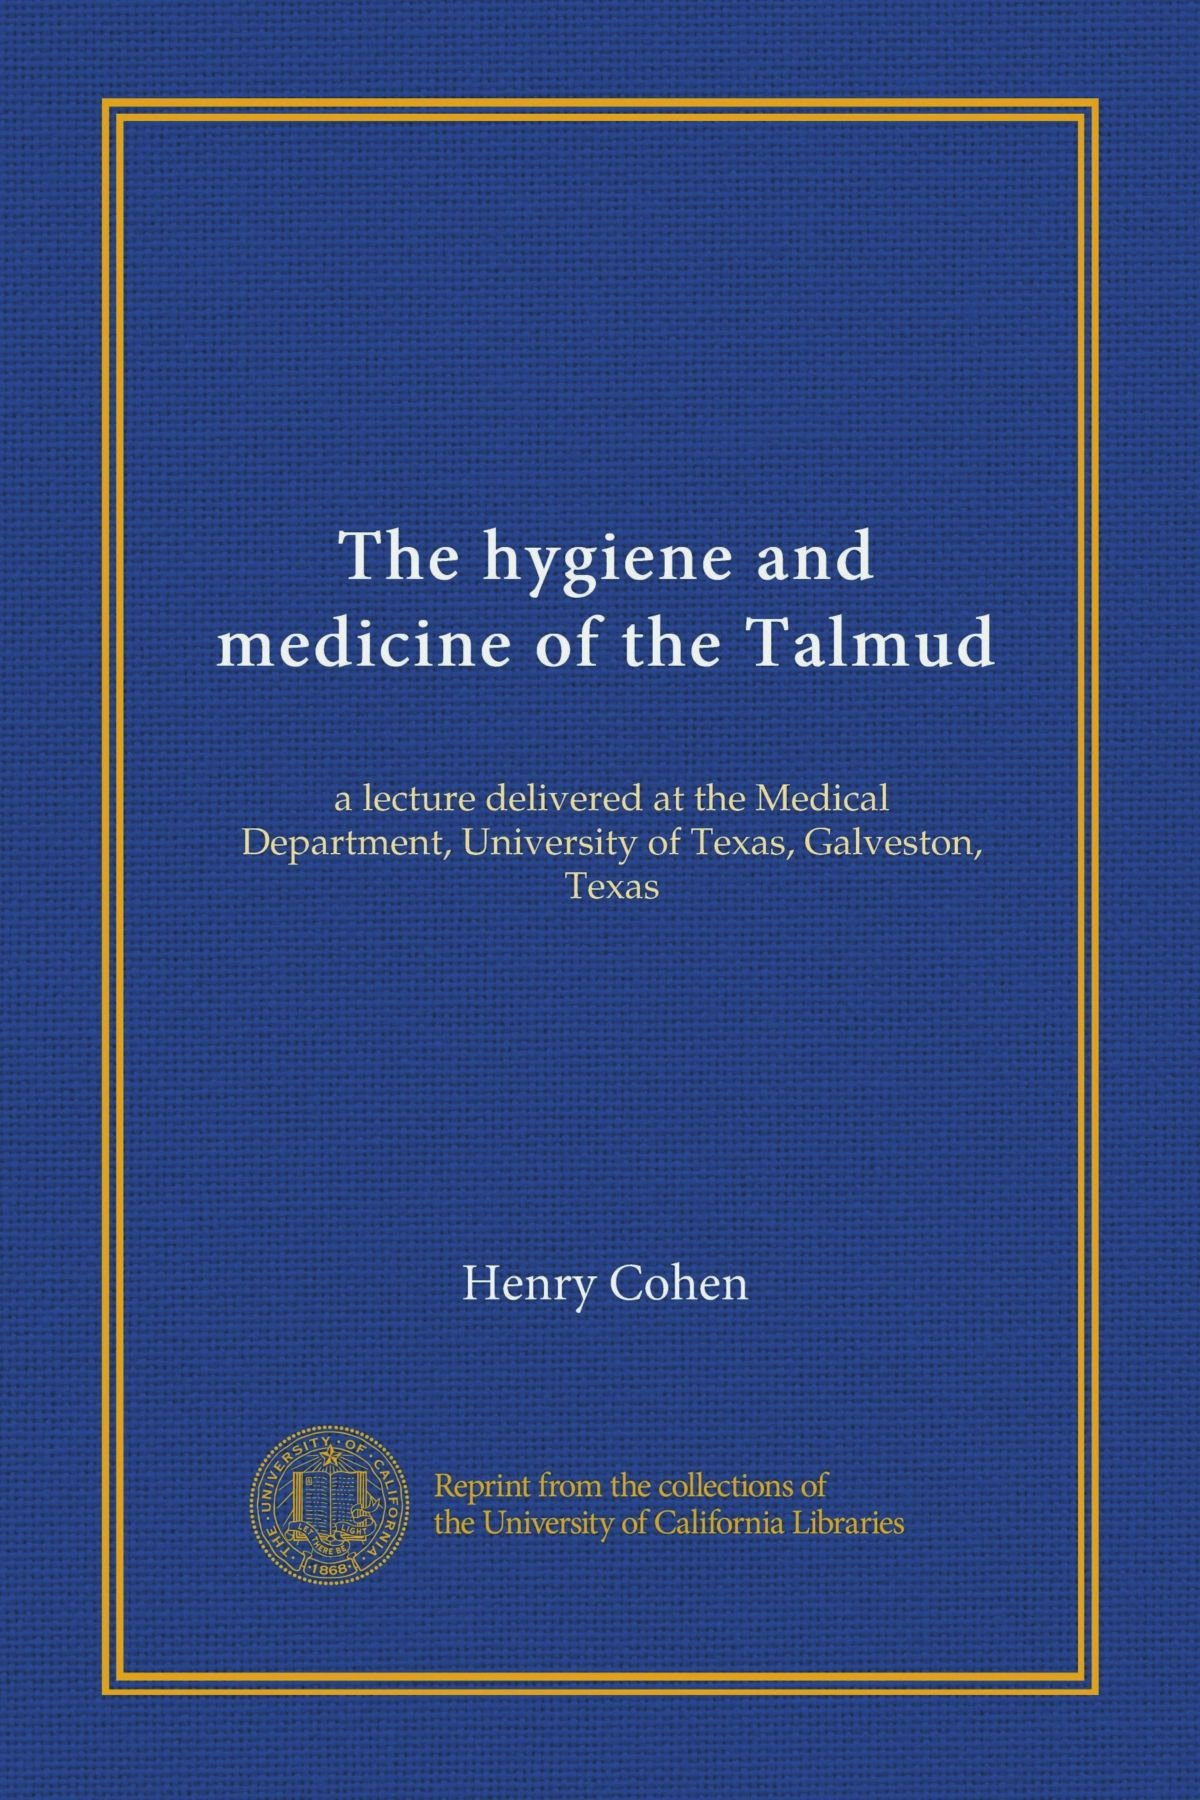 Download The hygiene and medicine of the Talmud: a lecture delivered at the Medical Department, University of Texas, Galveston, Texas pdf